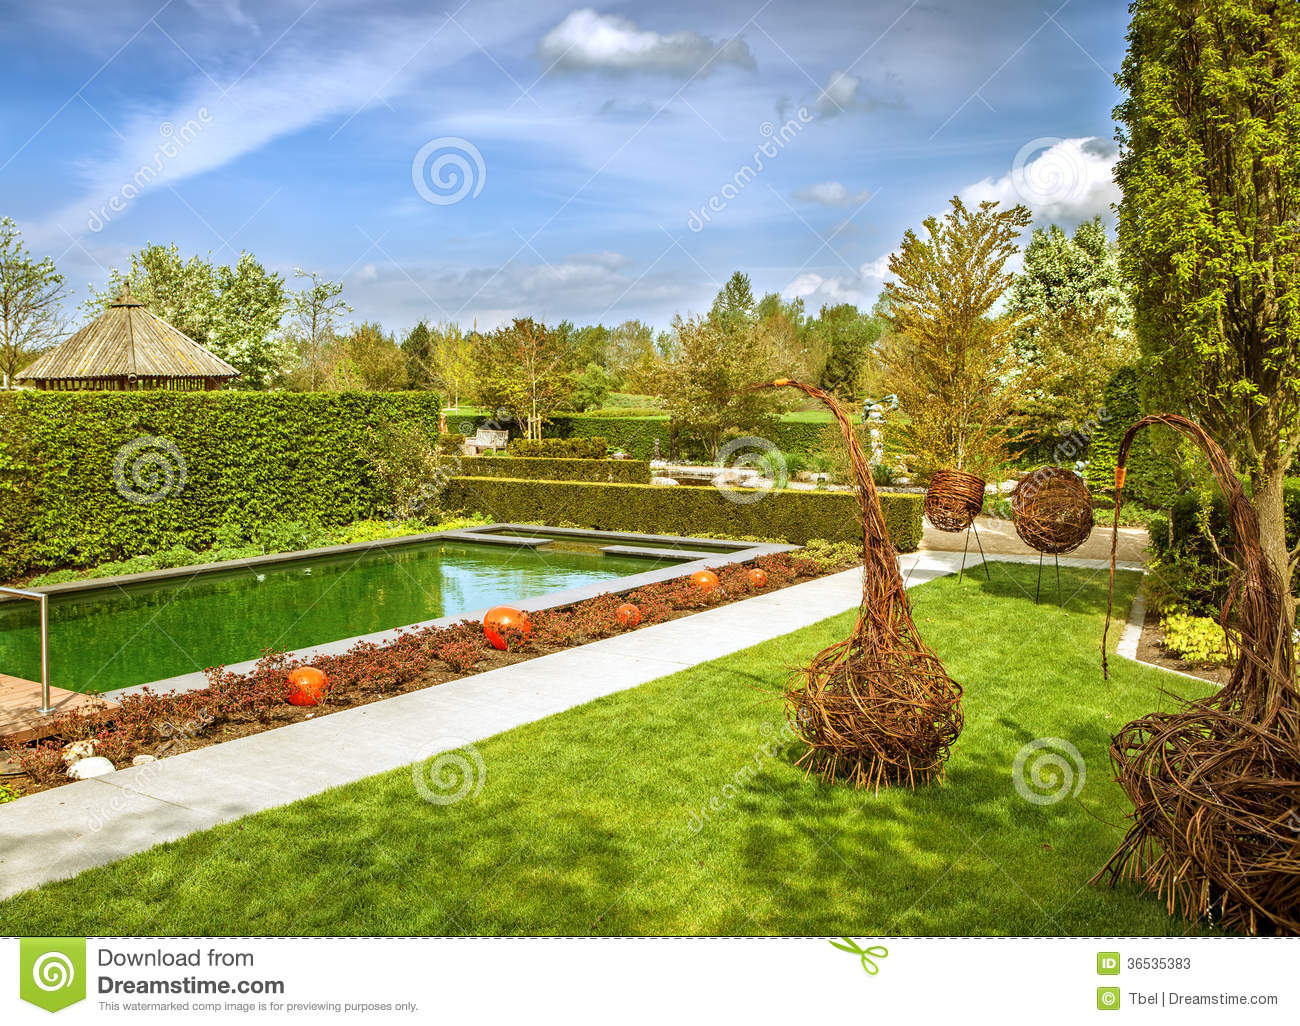 Jardin moderne photos stock image 36535383 for Image jardin moderne